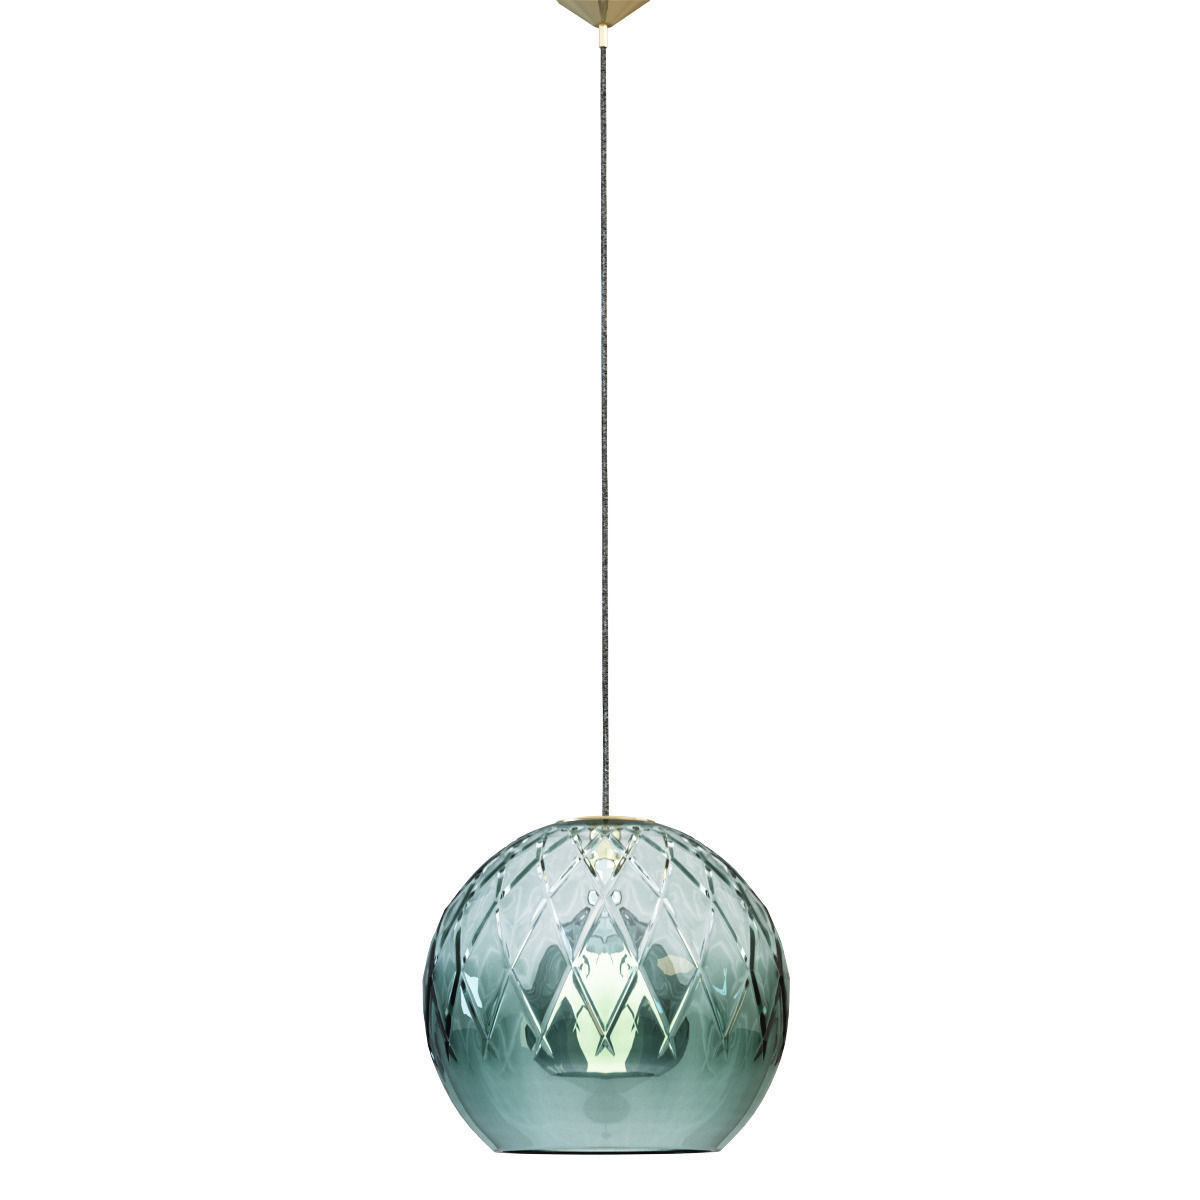 Baccarat SFERA ROUND PENDANT LIGHT 3D Model MAX OBJ 3DS